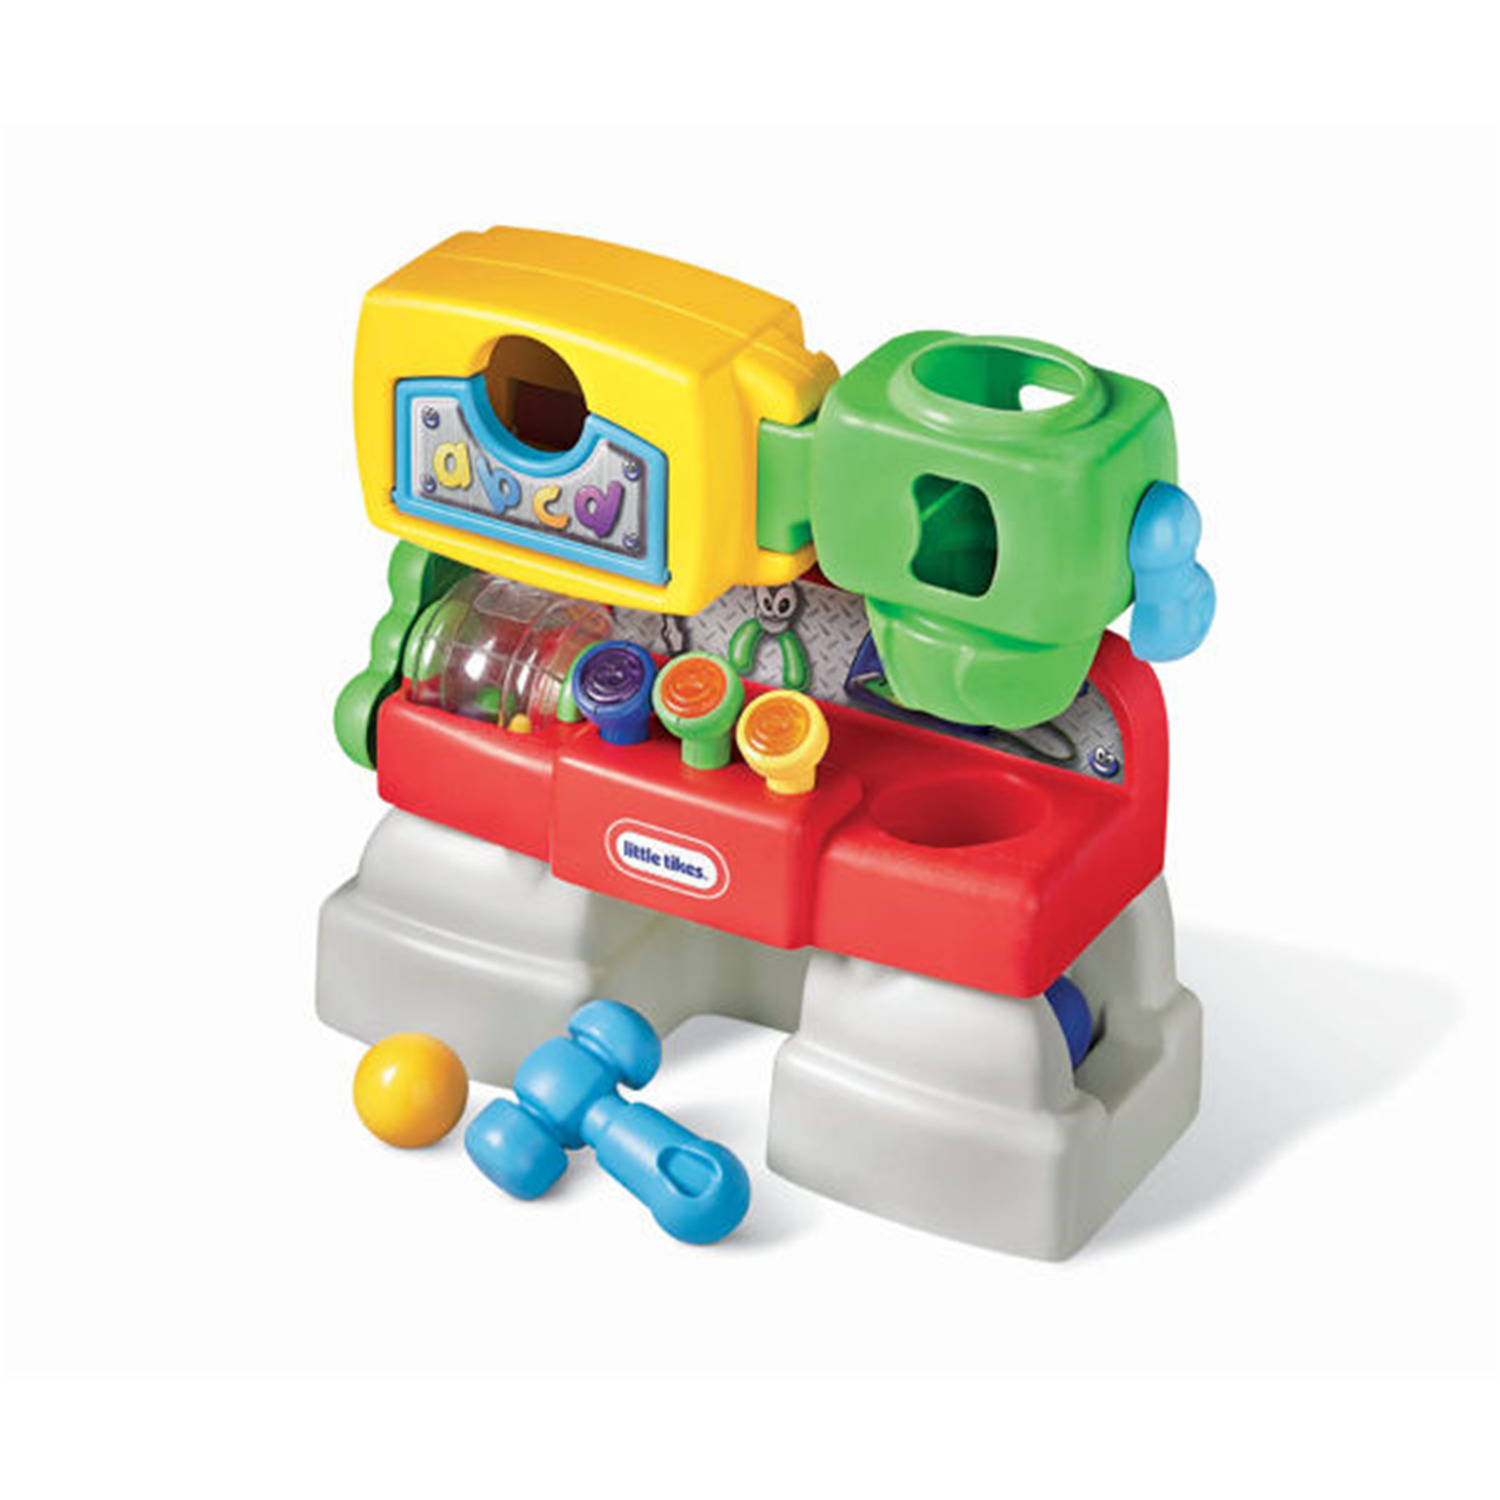 Little Tikes Discoversounds Workshop By Oj Commerce 619571